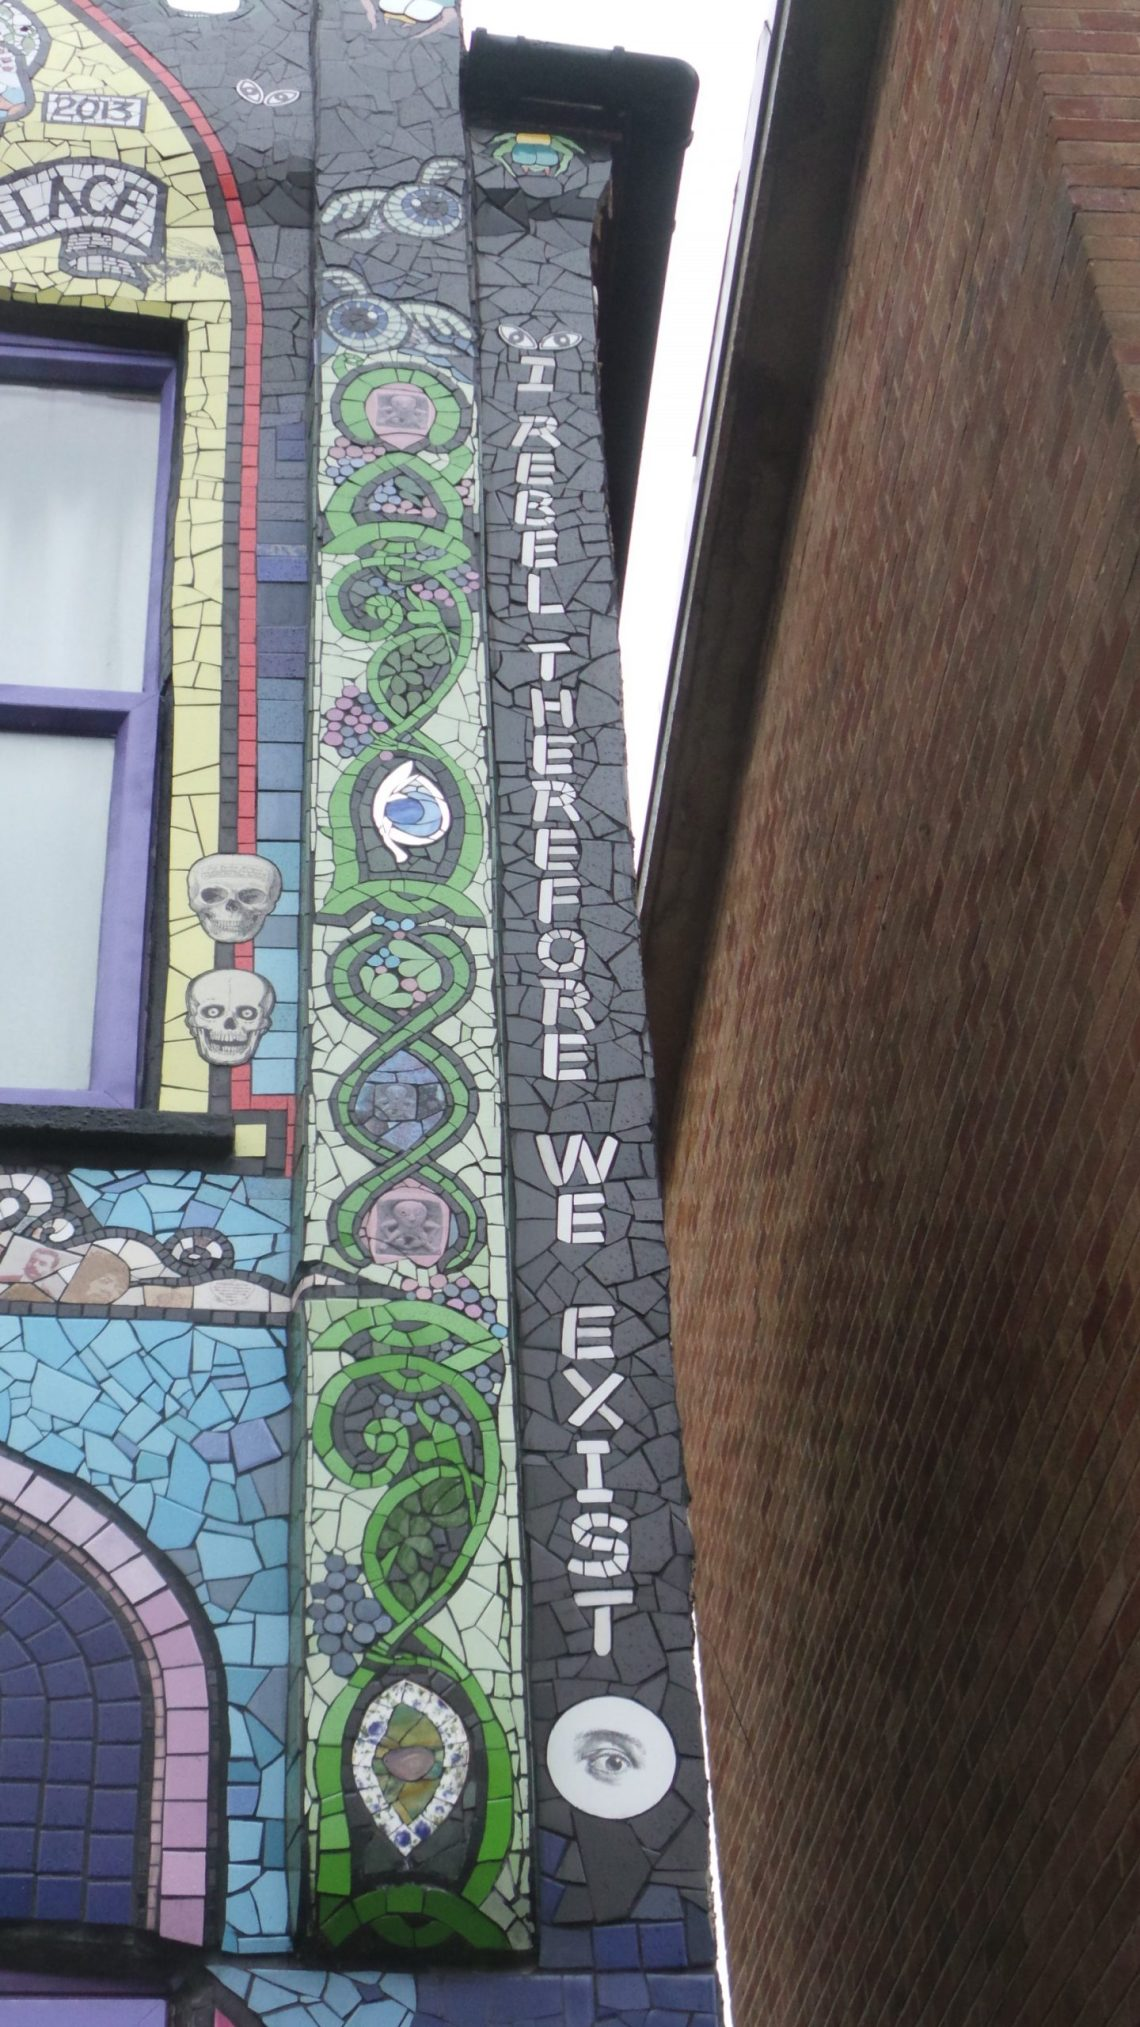 A mosaic double helix on the front of the mosaic house by Karen Francesca